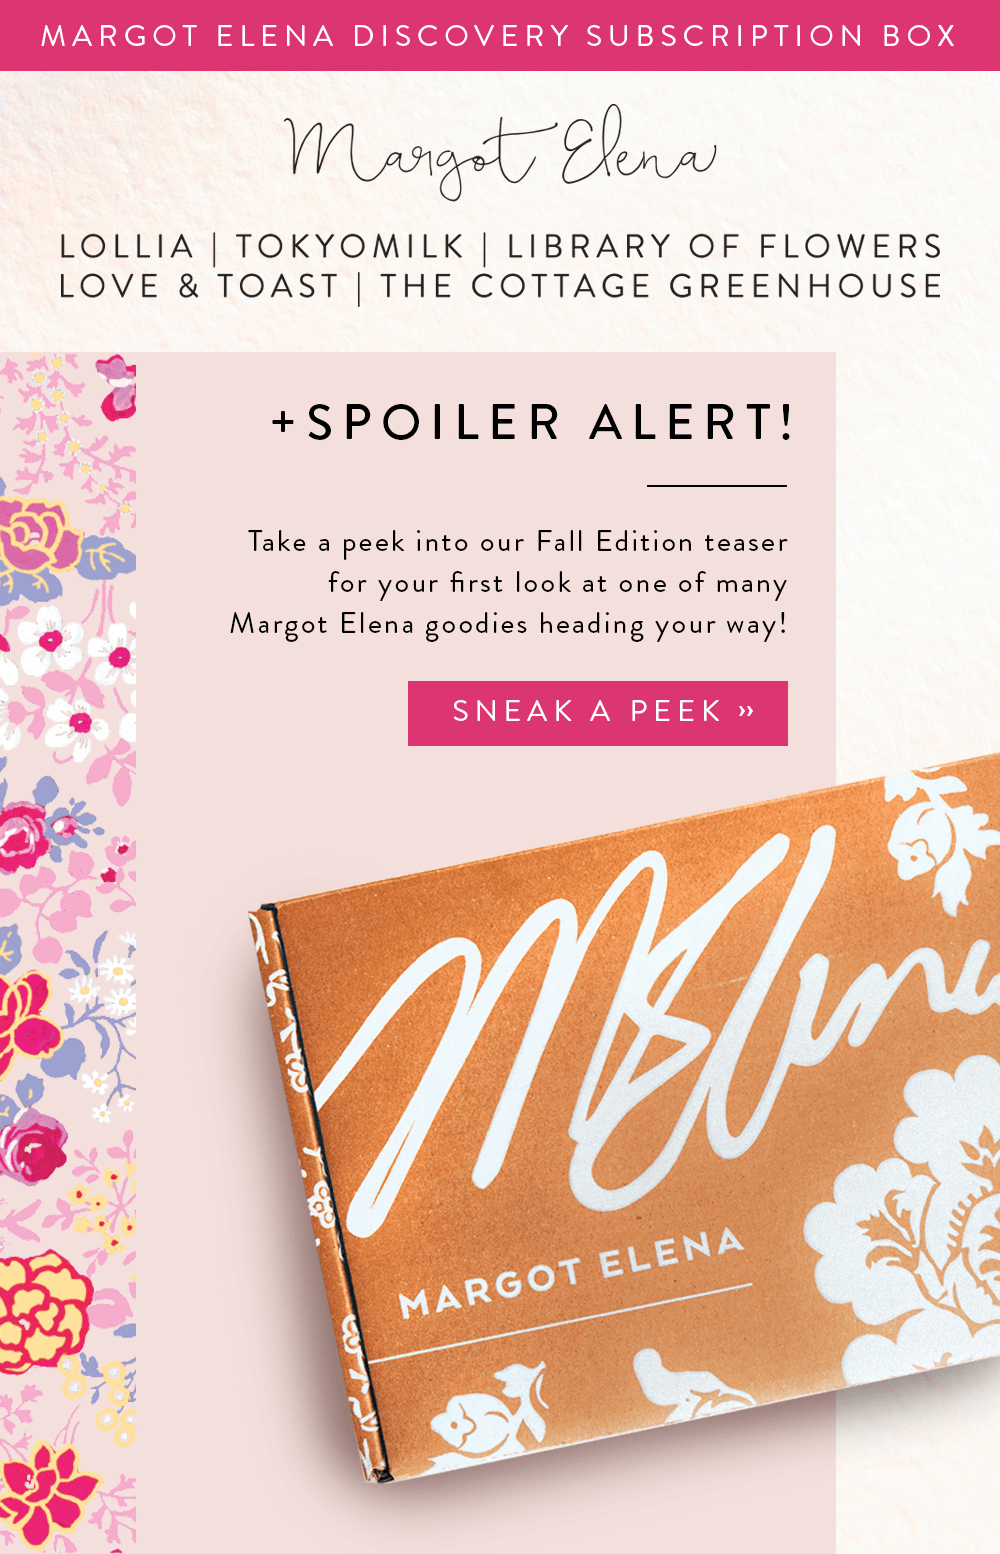 Fall 2018 Margot Elena Discovery Box Spoiler #1